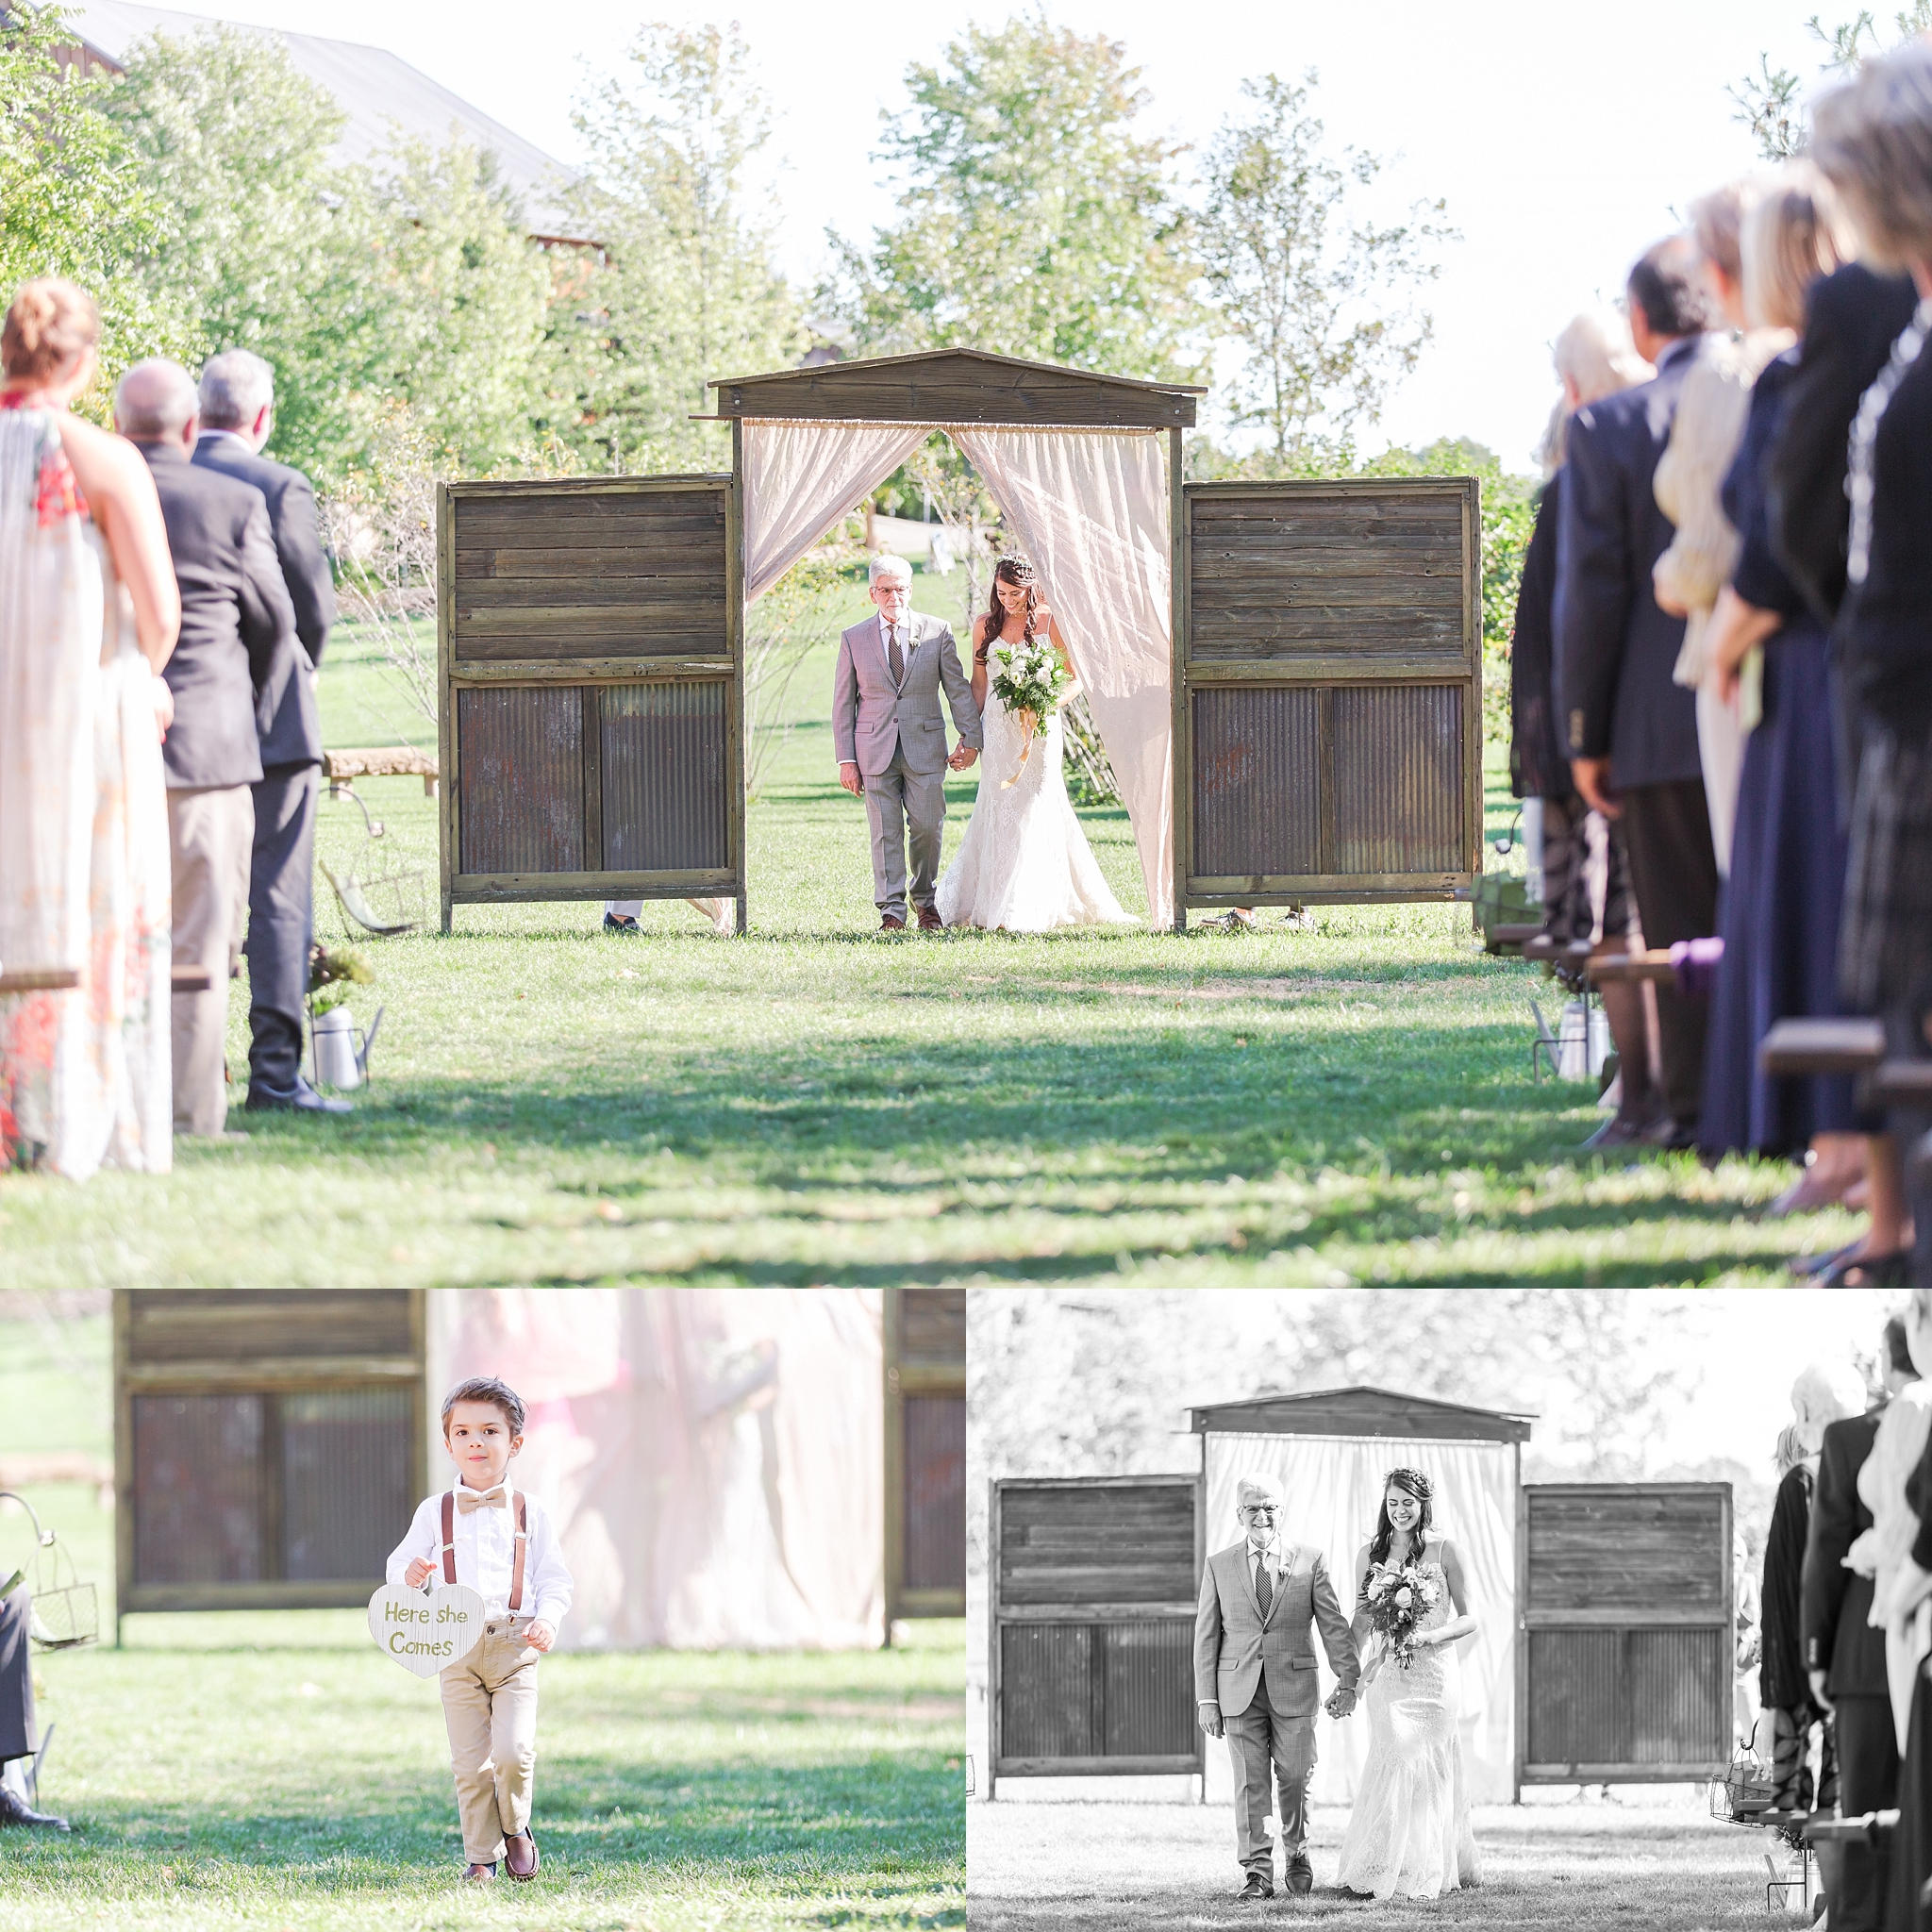 natural-rustic-wedding-photos-at-frutig-farms-the-valley-in-ann-arbor-michigan-by-courtney-carolyn-photography_0055.jpg